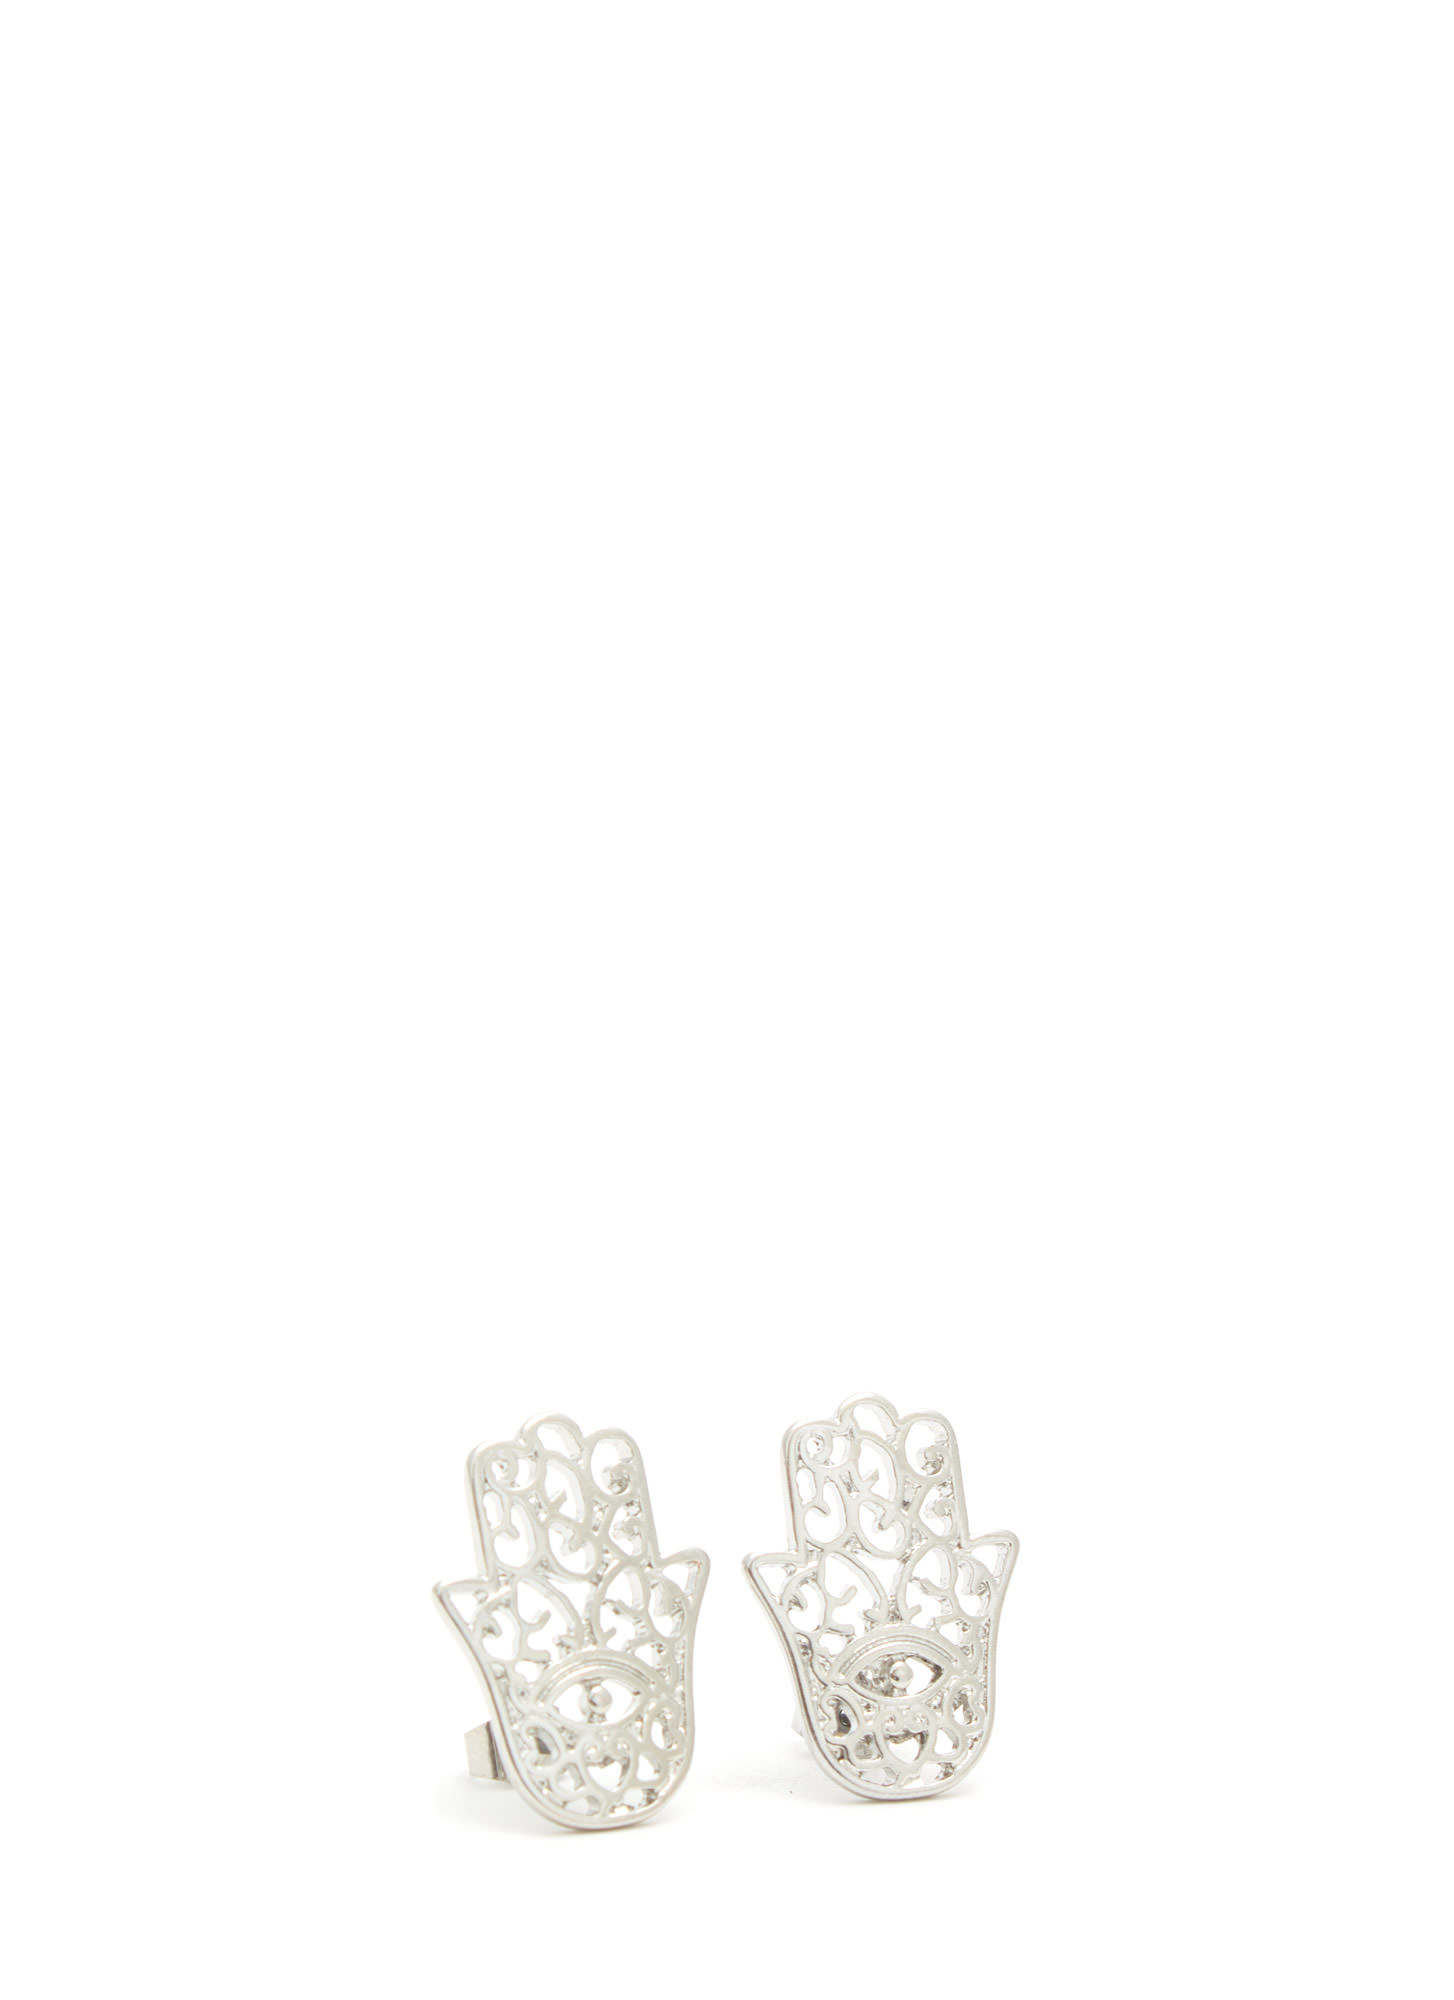 Use Protection Cut-Out Hamsa Earrings SILVER